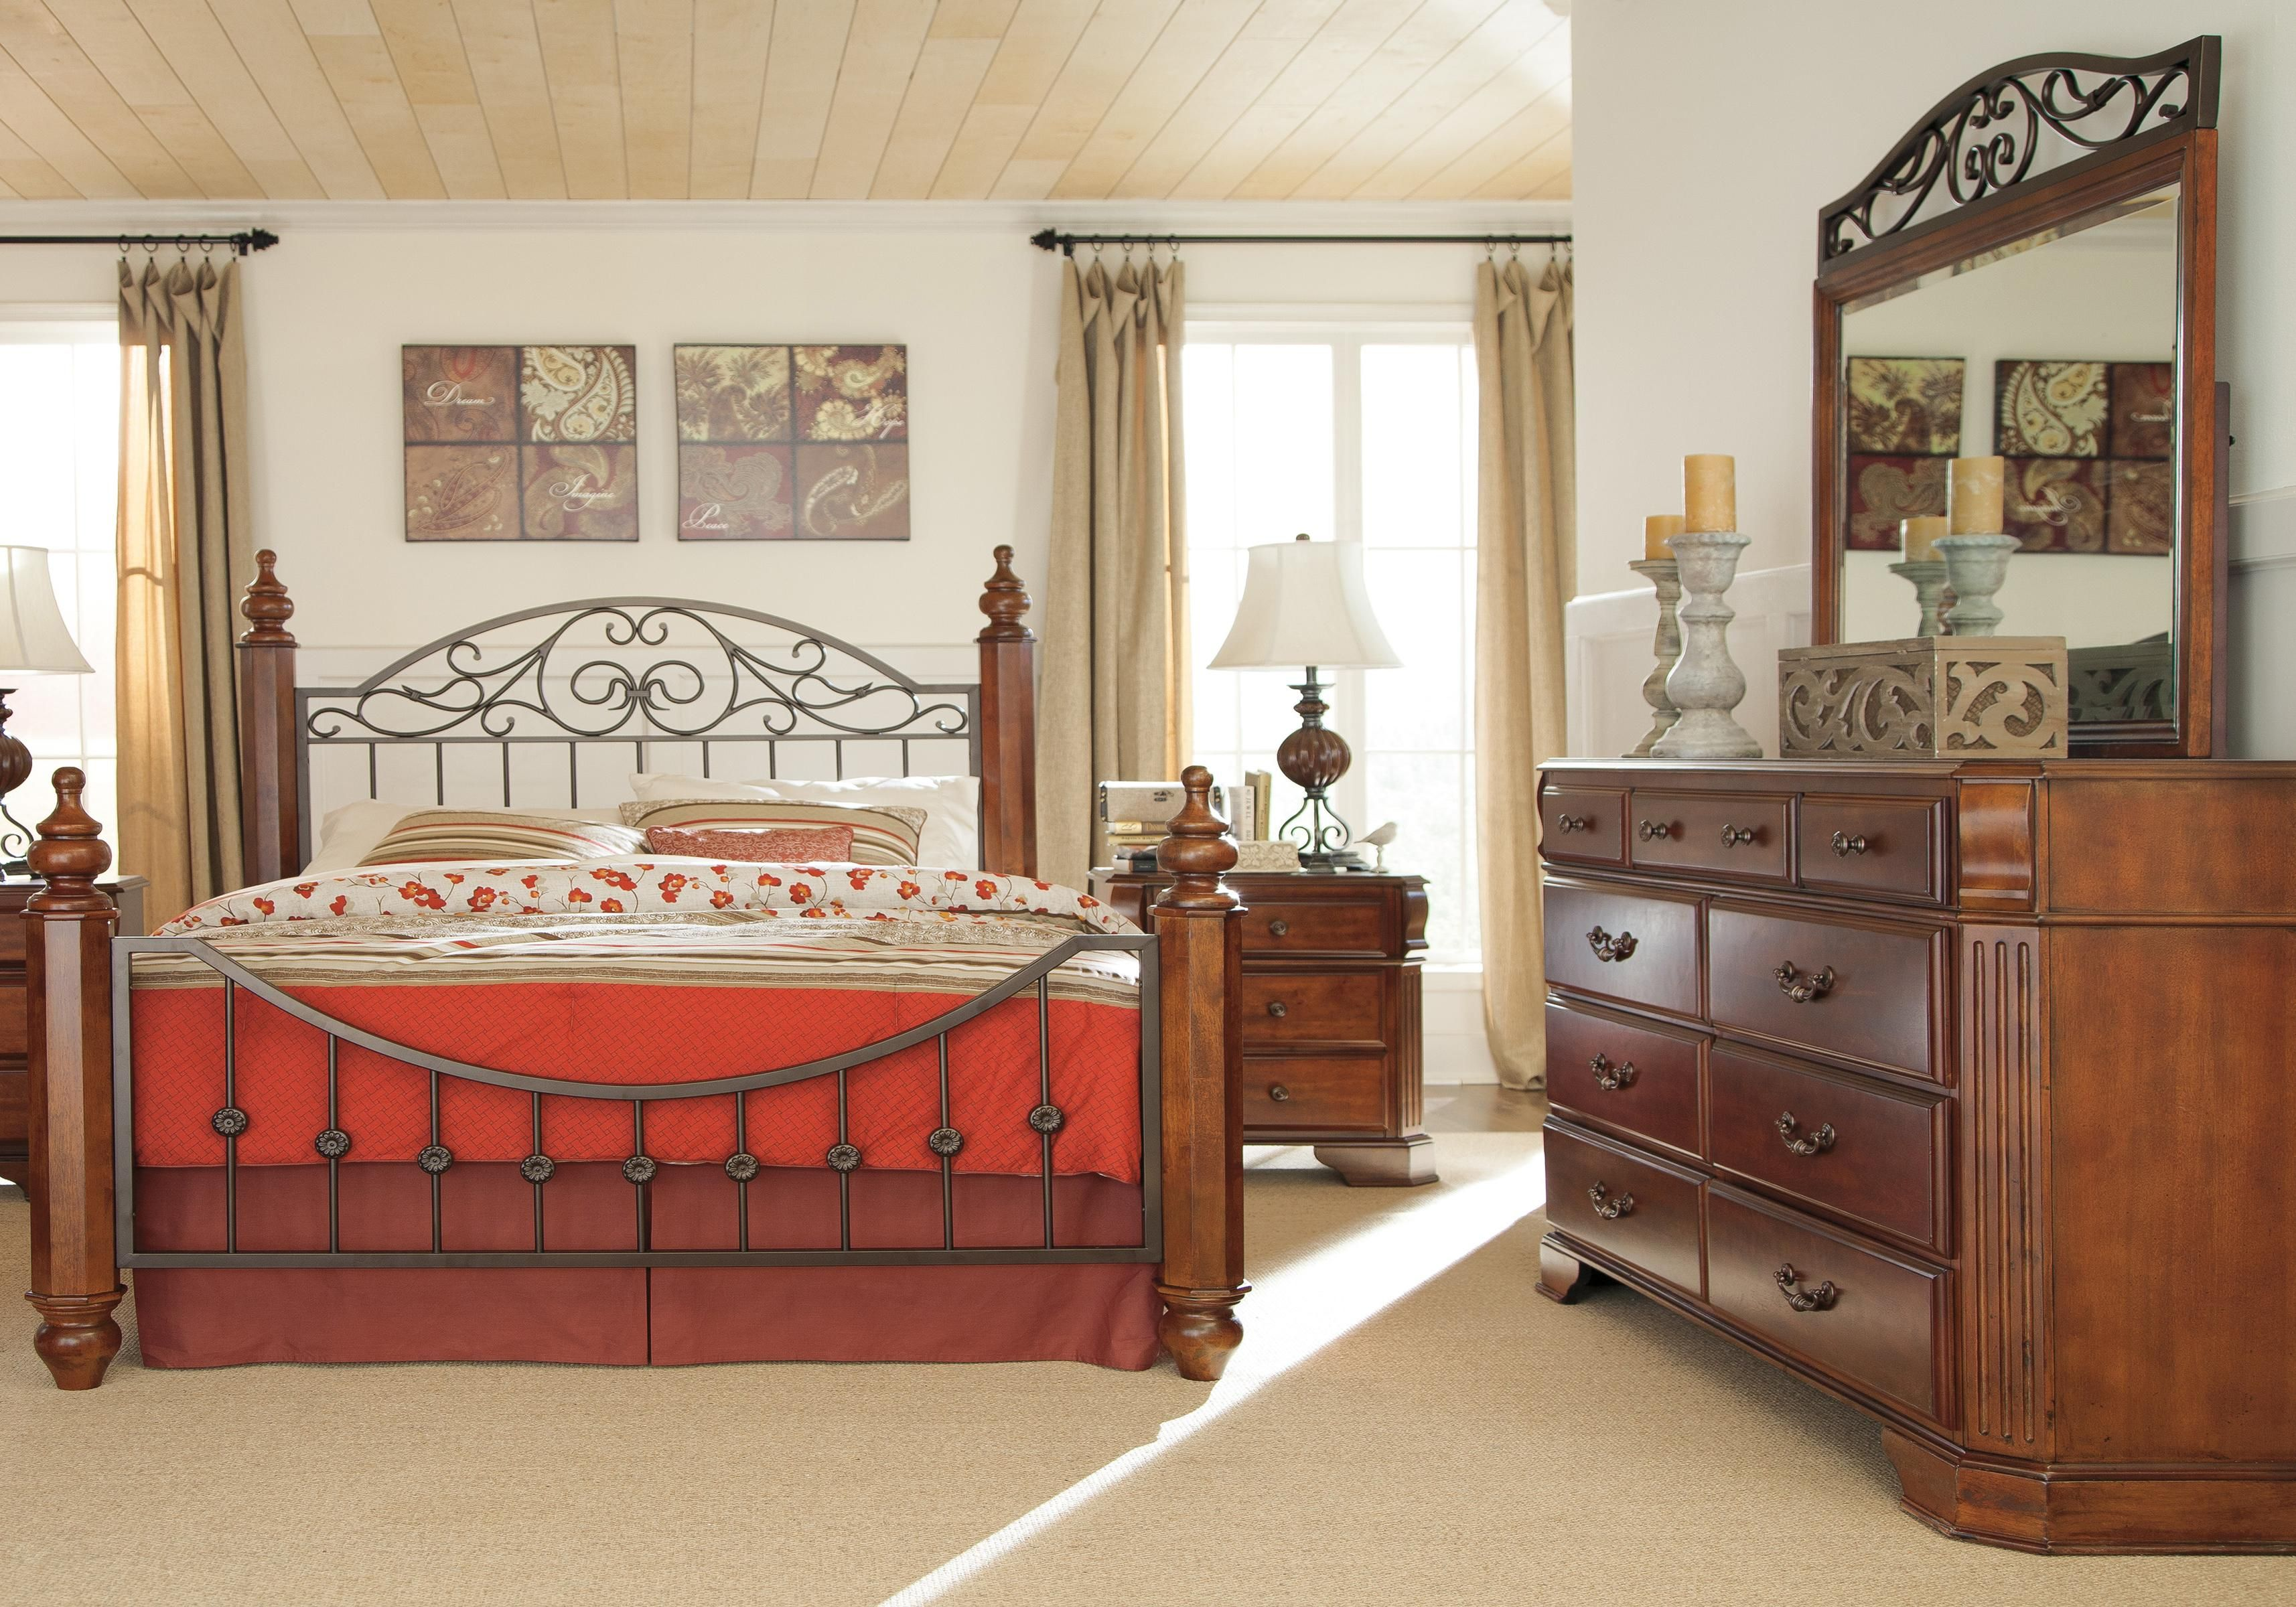 4 Piece Queen Bedroom Group | Bedroom sets, Bedroom set ...